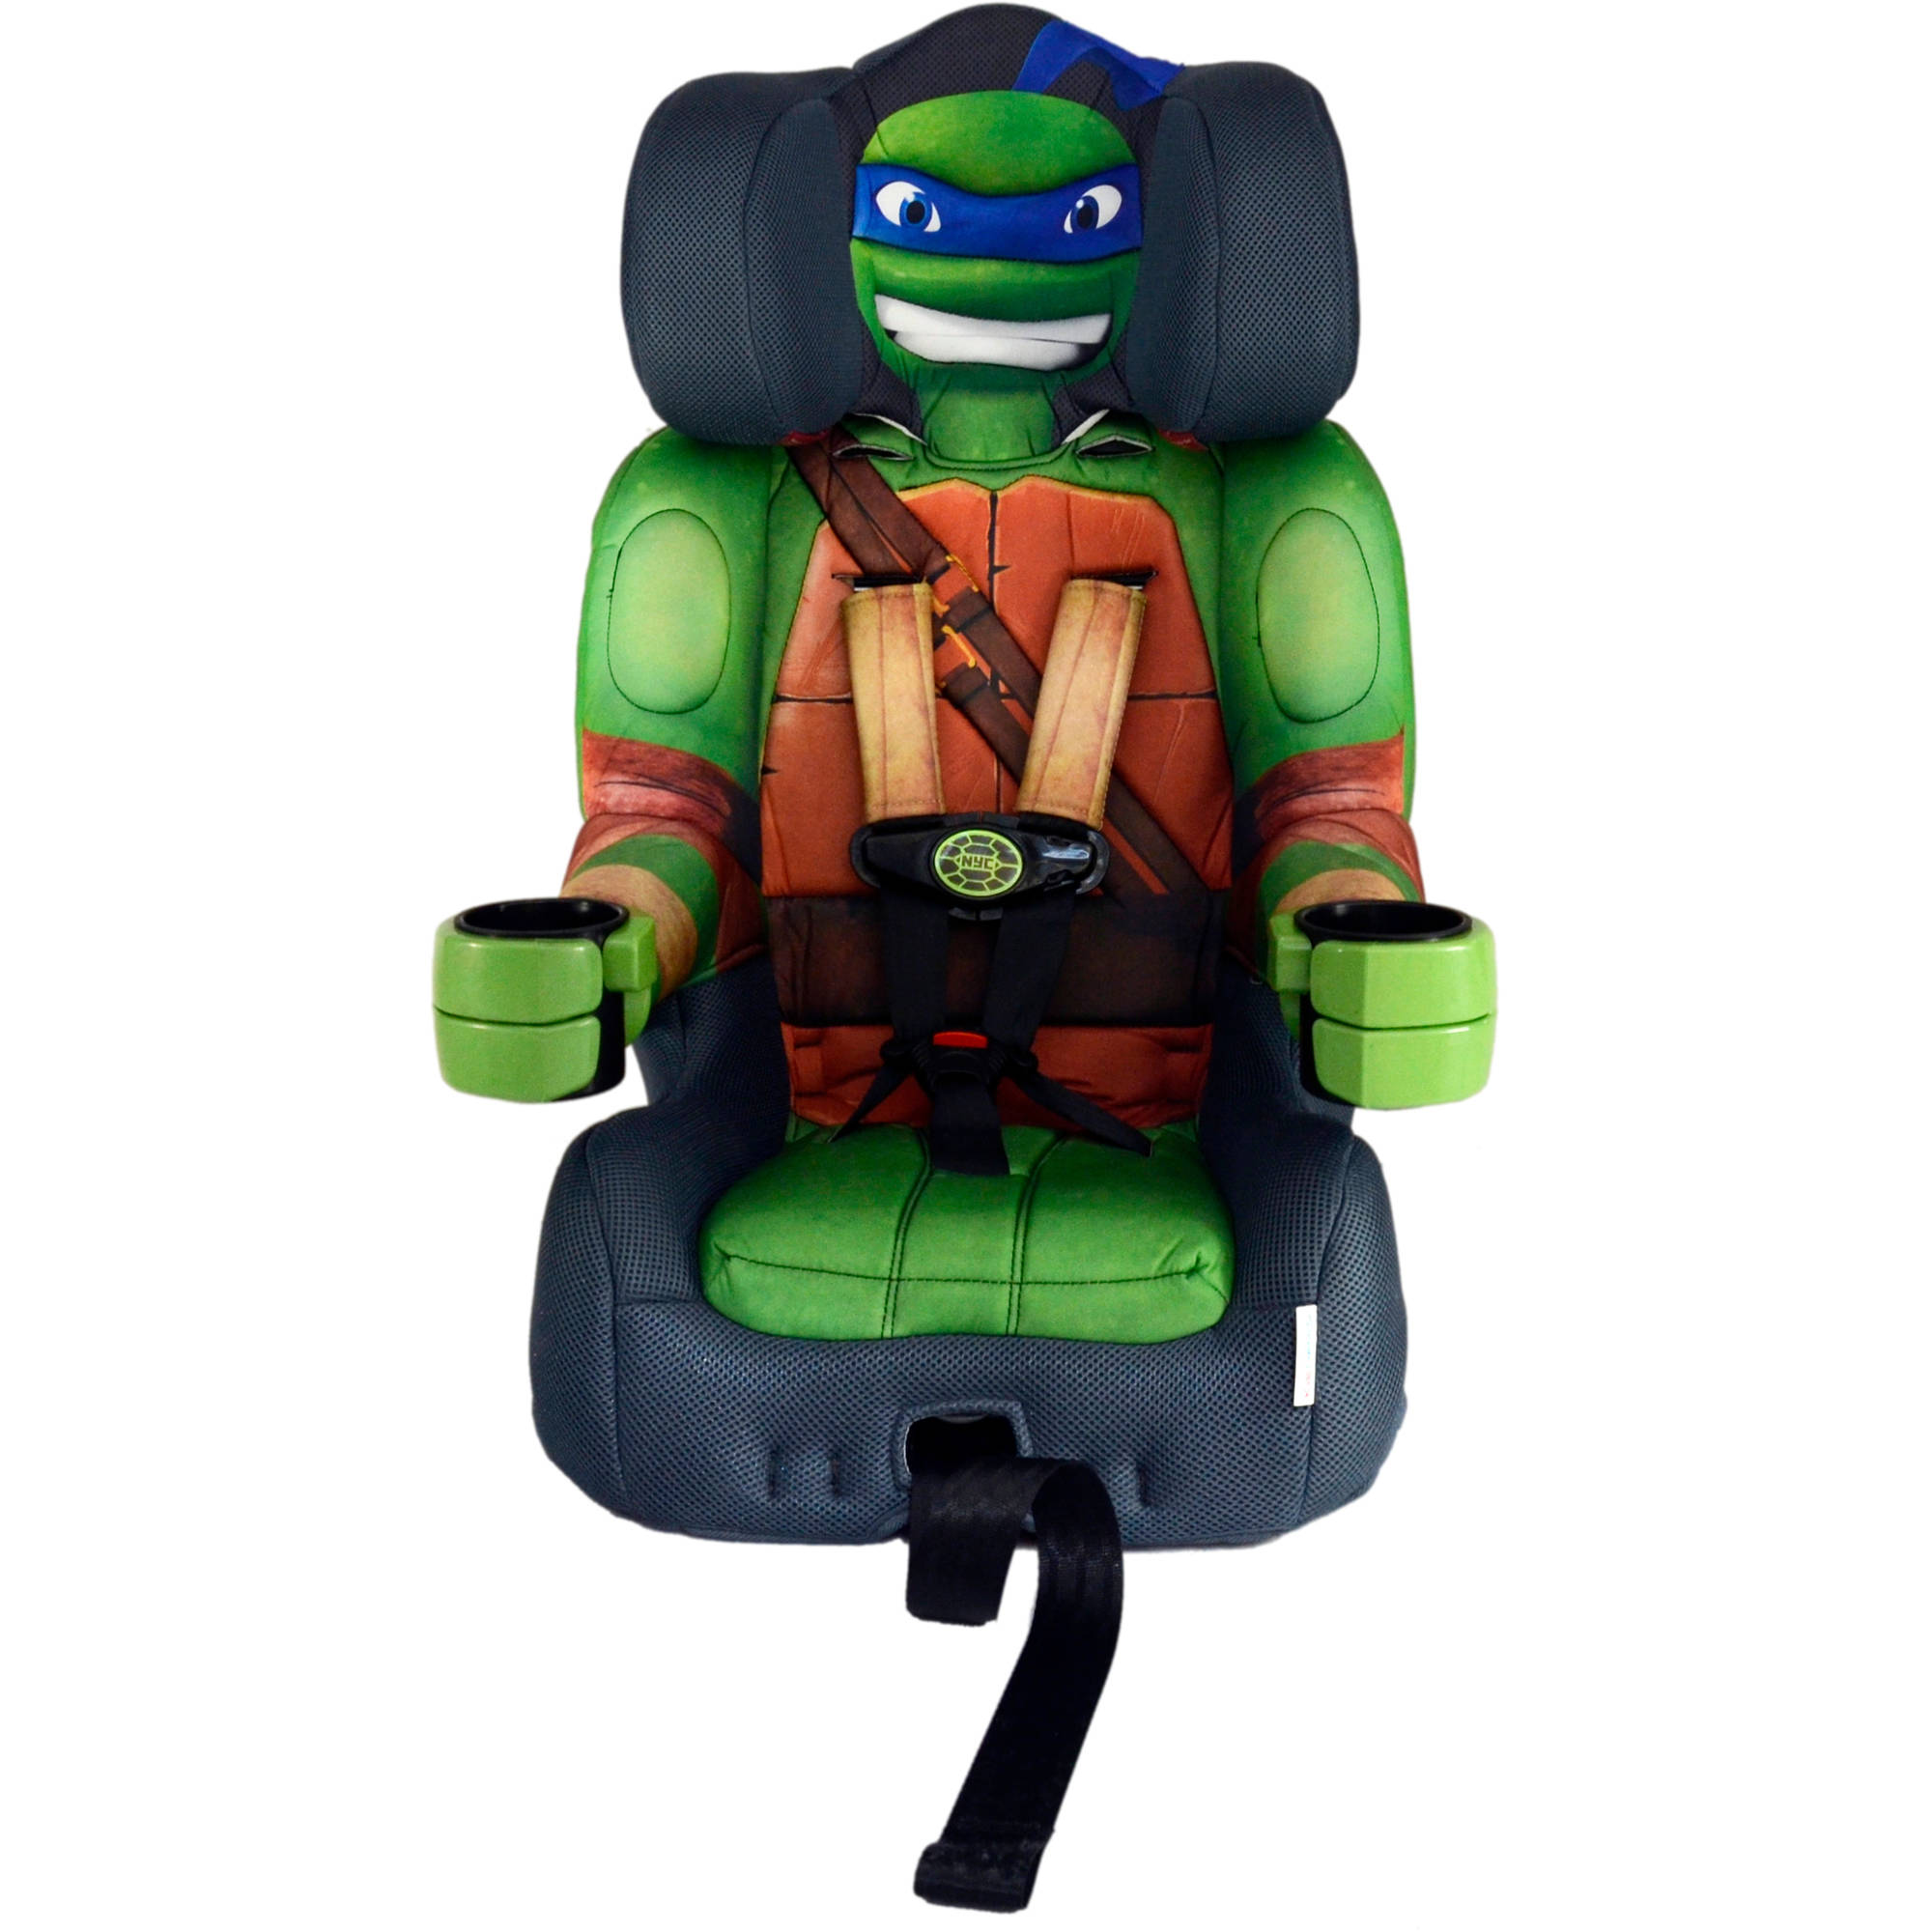 Kidsembrace Friendship Combination Harness Booster Car Seat, Teenage Mutant Ninja Turtles